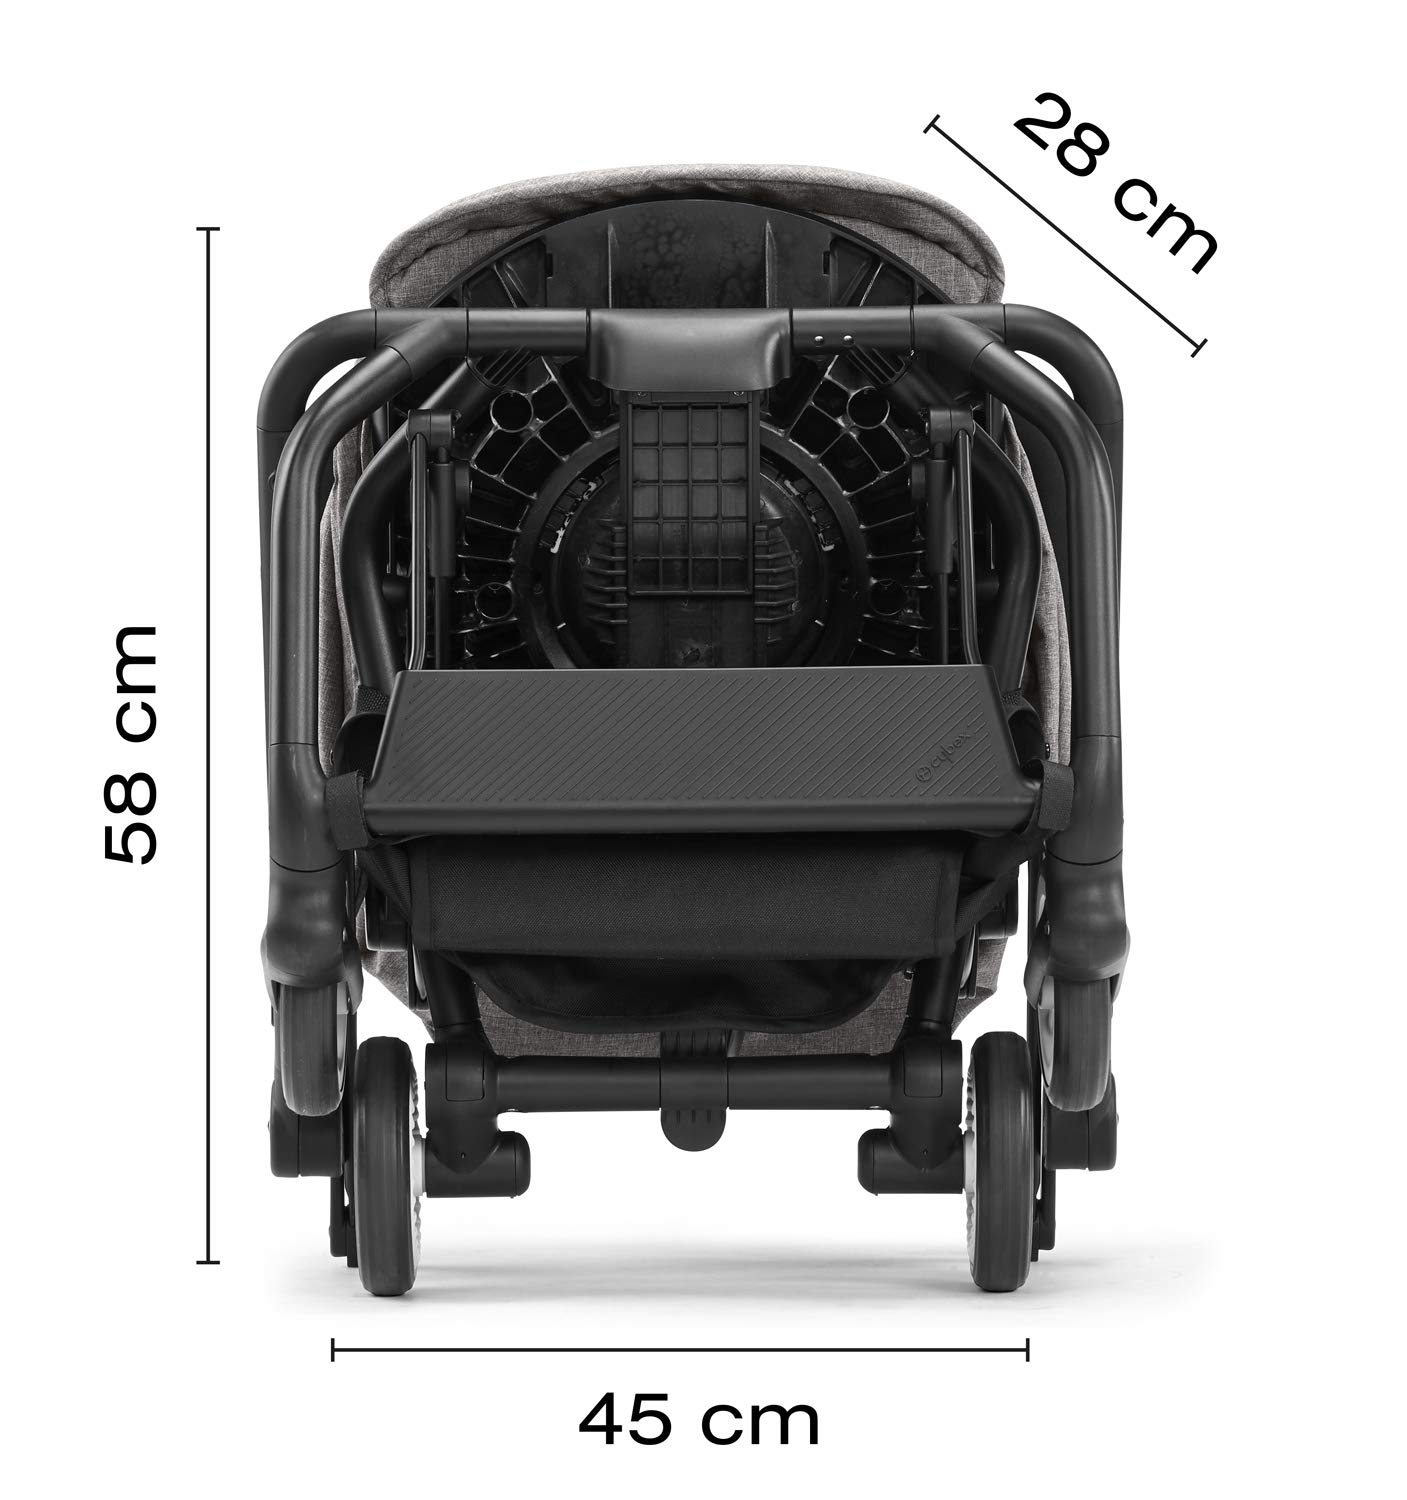 CYBEX Gold Eezy S Twist Compact Pushchair, 360° Rotatable Seat Unit, Ultra-Compact, From Birth to 17 kg (approx. 4 years), Lavastone Black  Sturdy, High-quality Compact Pushchair for newborns up to approx. 17 kg (approx. 4 years) with unique rotatable seat unit - Including rain cover for optimum use in all weather conditions Quick and easy change of direction with 360° rotatable seat unit, Comfortable sitting position thanks to stepless adjustable reclining backrest with lie-flat position, Puncture proof tyres and all-terrain wheel suspension Simple folding with one-hand folding mechanism for compact travel size (LxWxH: 26 x 45 x 56 cm), Extremely manoeuvrable due to narrow wheelbase, Can also be used as 3-in-1 travel system with separately available CYBEX and gb infant carriers and the baby cocoon S (sold separately) 4